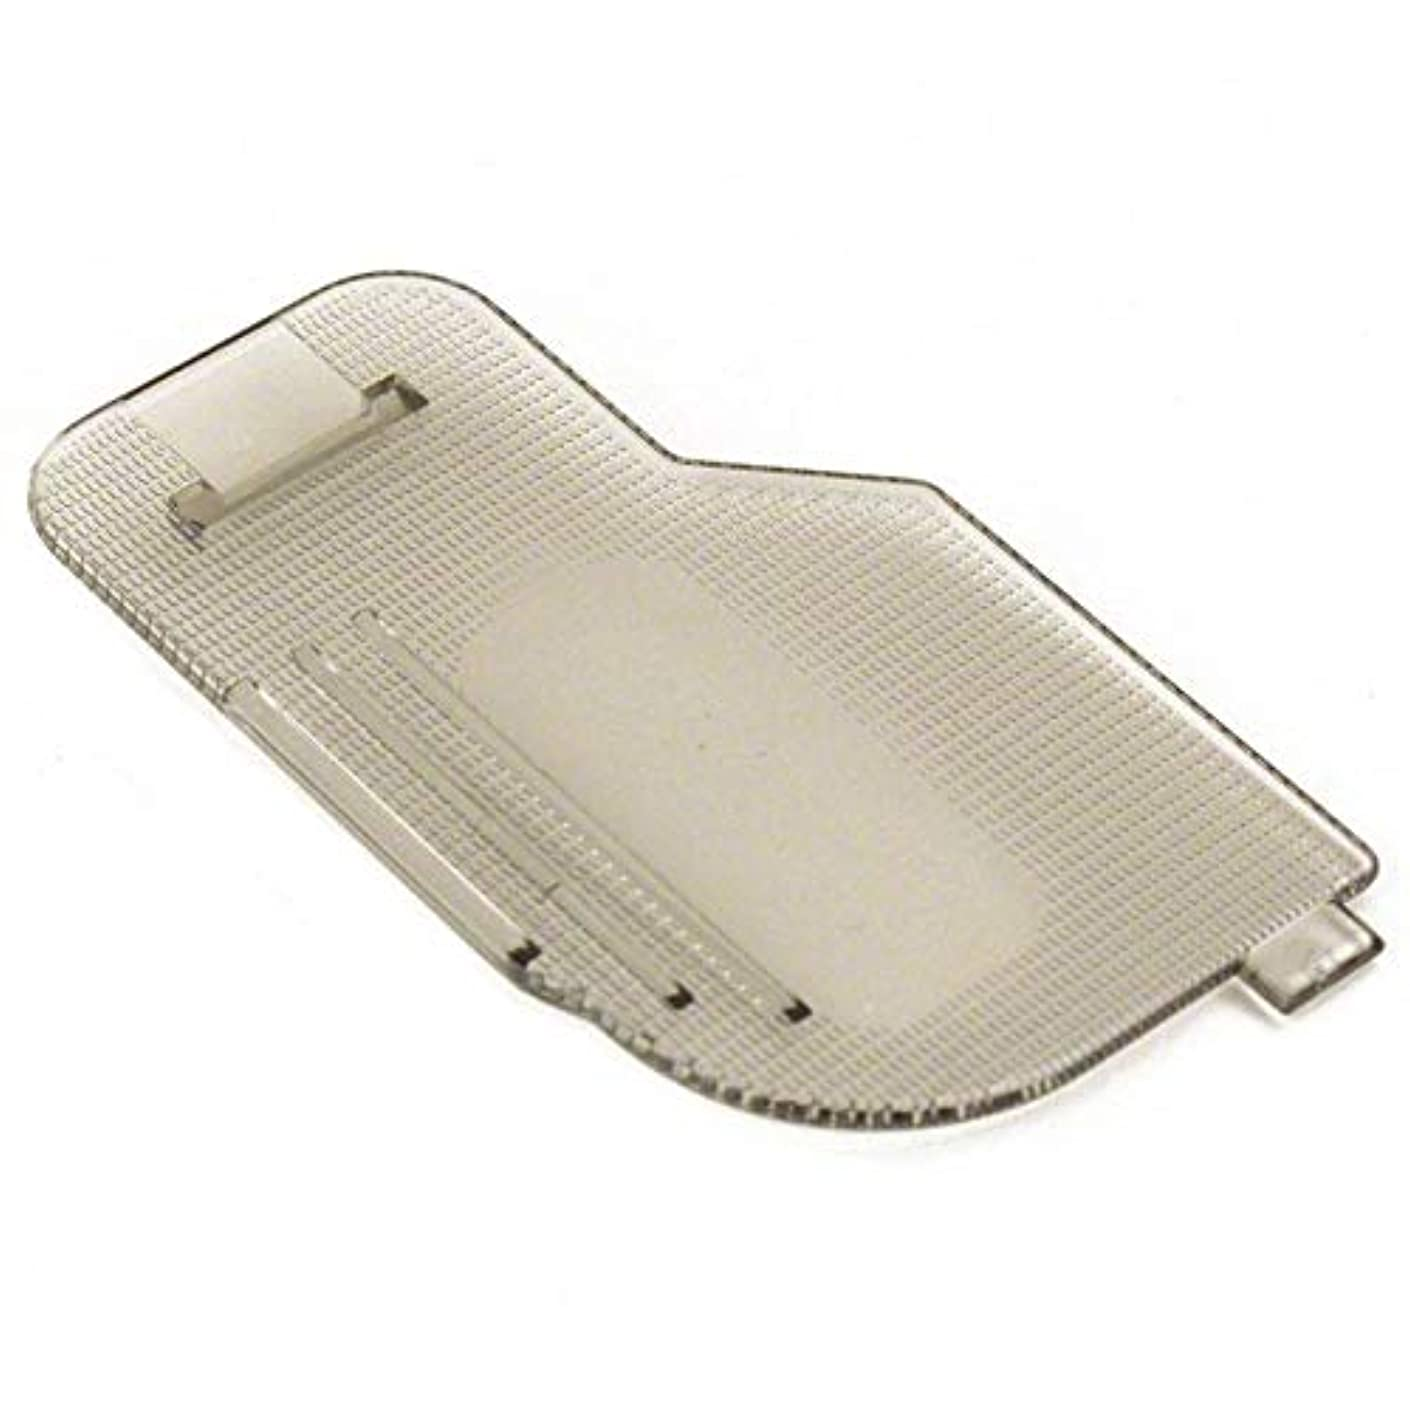 NGOSEW Bobbin Cover Plate Works With Brother SE270D, SE350, SE400, SE425,,RS240, RS250, RS260